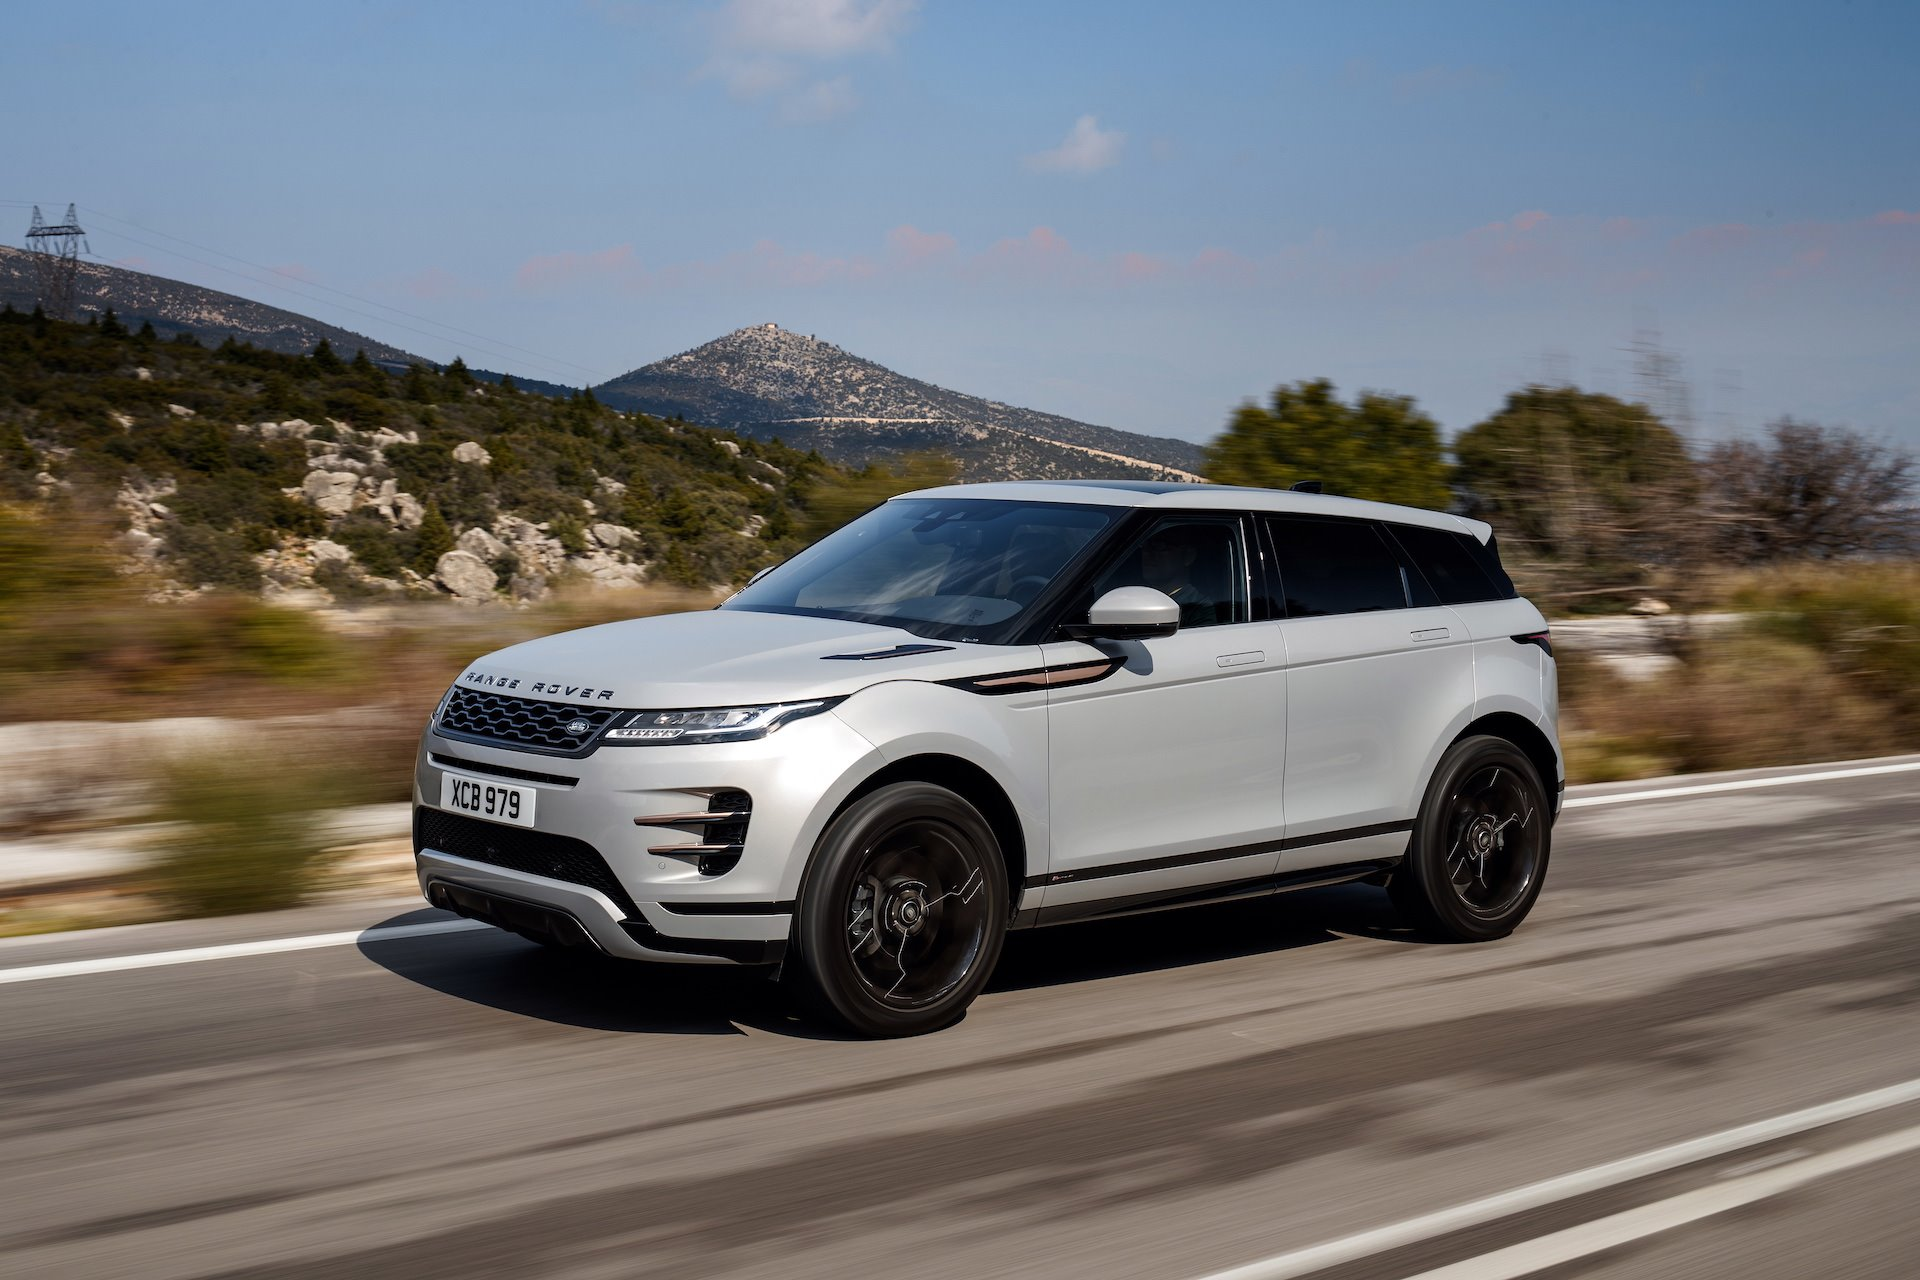 New 2020 Land Rover-Range Rover Evoque SUV Range Rover Evoque S for sale $42,650 at M and V Leasing in Brooklyn NY 11223 1